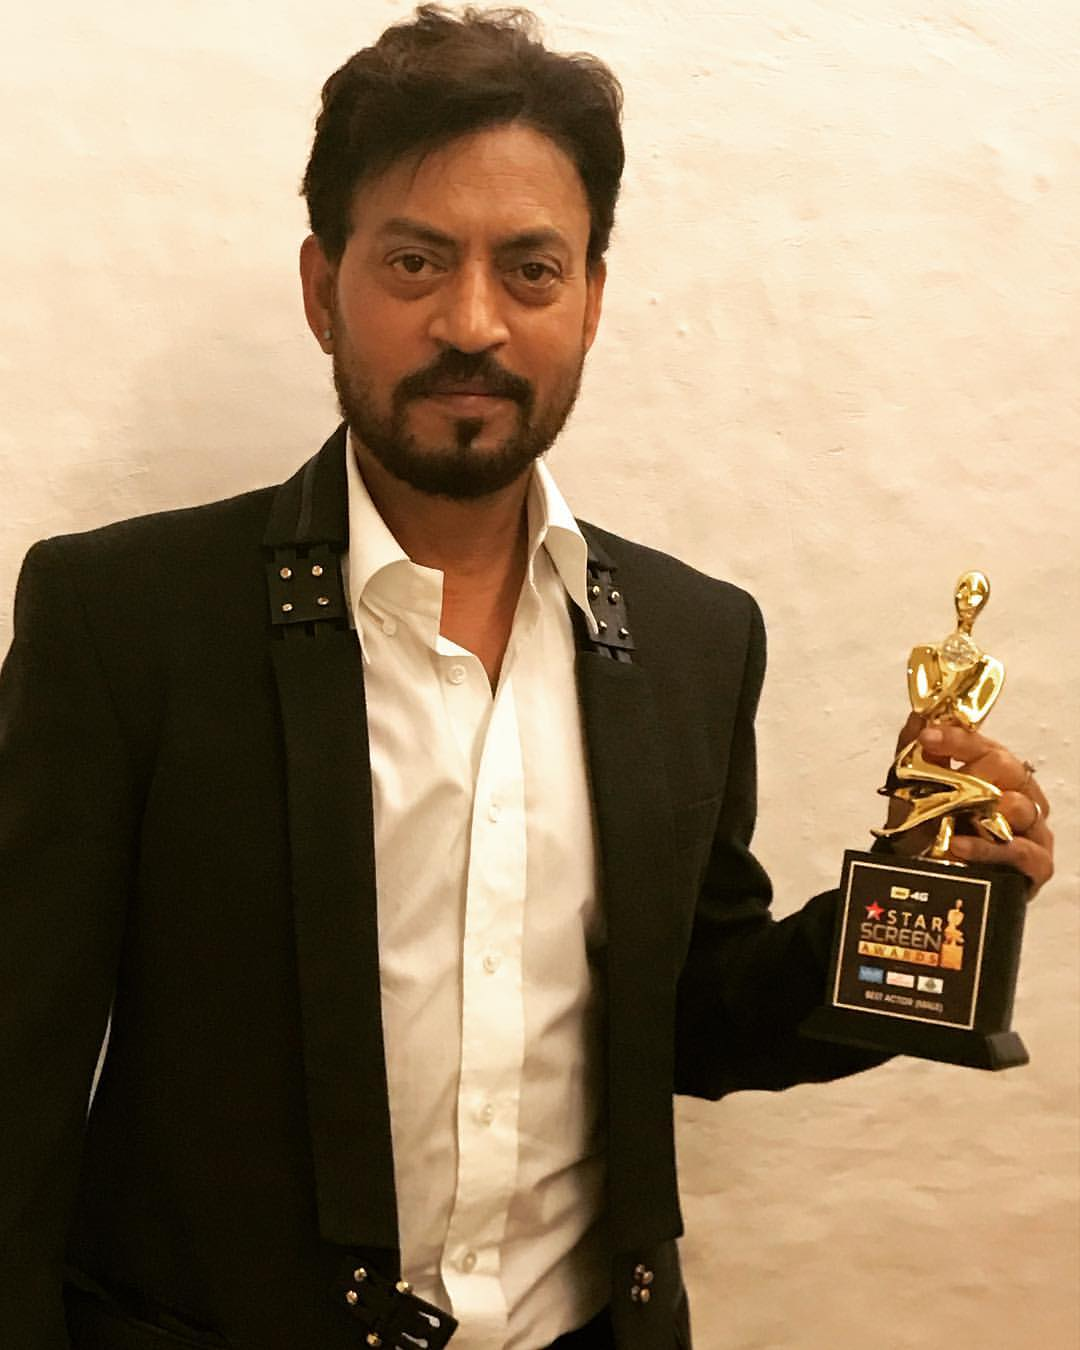 Bollywood Actor and Slumdog Millionaire Star Irrfan Khan Dies After Suffering From Rare Disease